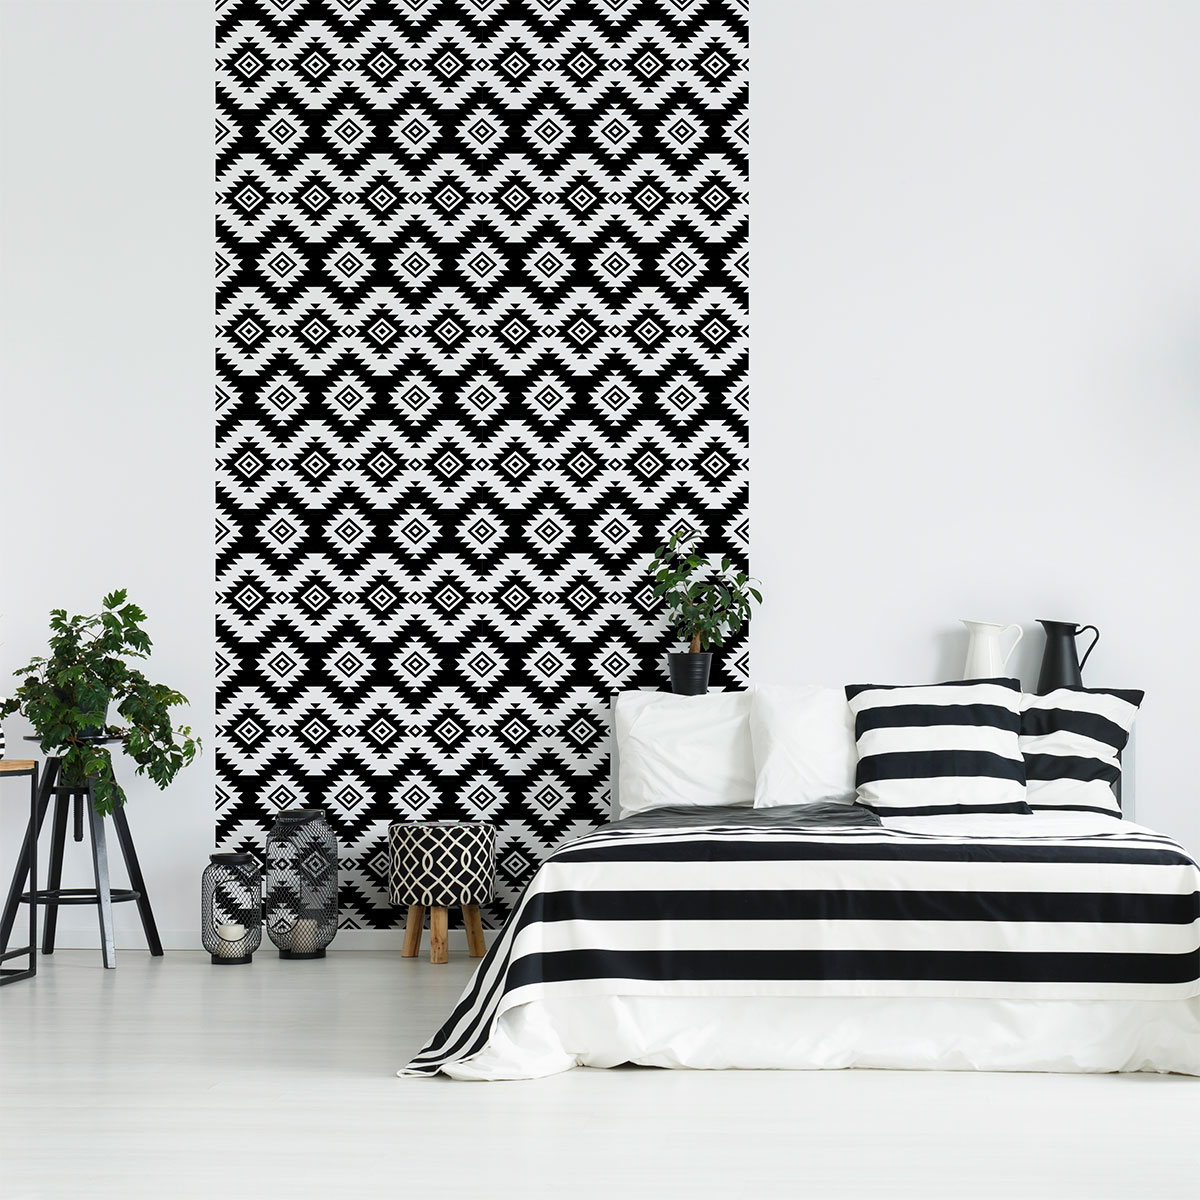 sticker papier peint scandinave jorgen salon design ambiance sticker. Black Bedroom Furniture Sets. Home Design Ideas